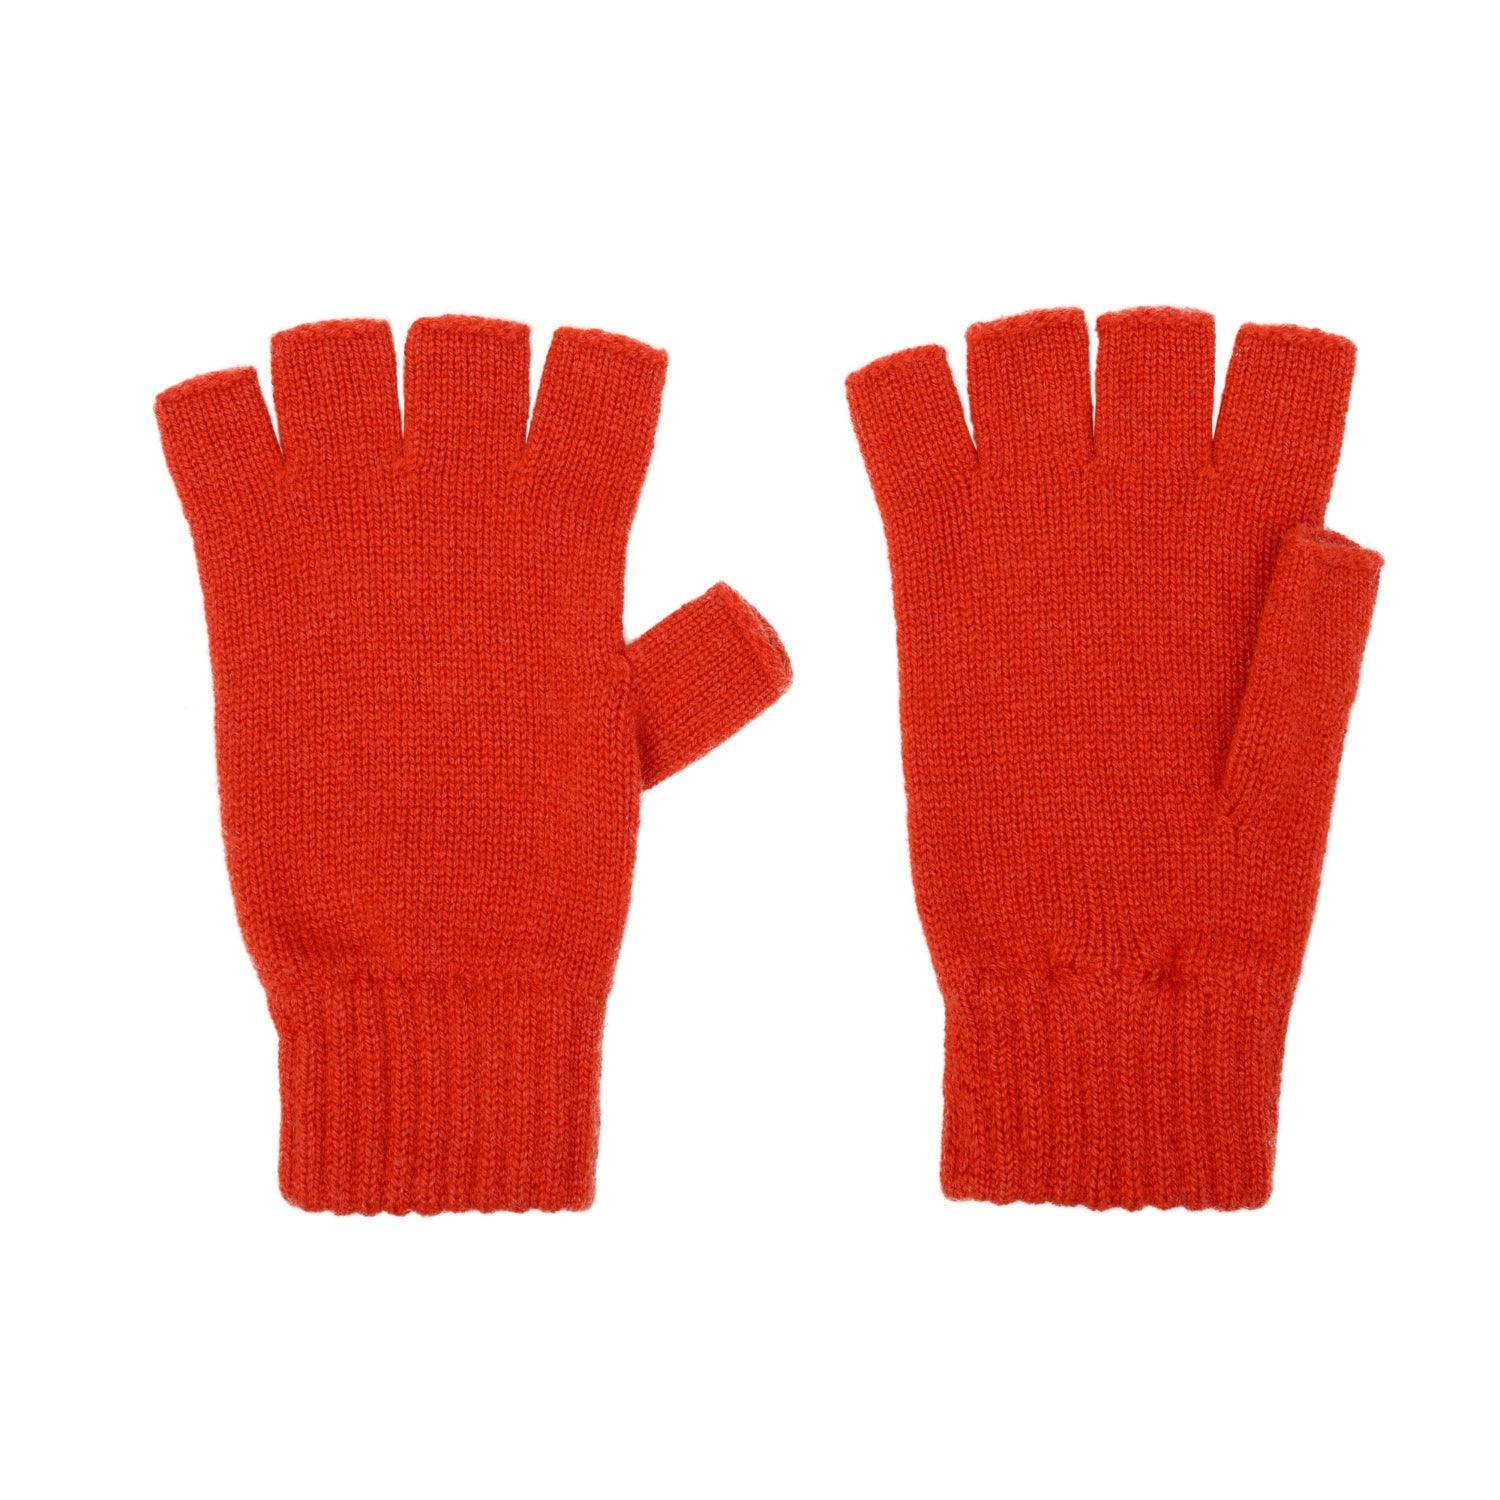 8b2568df330d3 Amaranth Orange cashmere fingerless gloves | Made in Scotland | buy now at  The Cashmere Choice ...